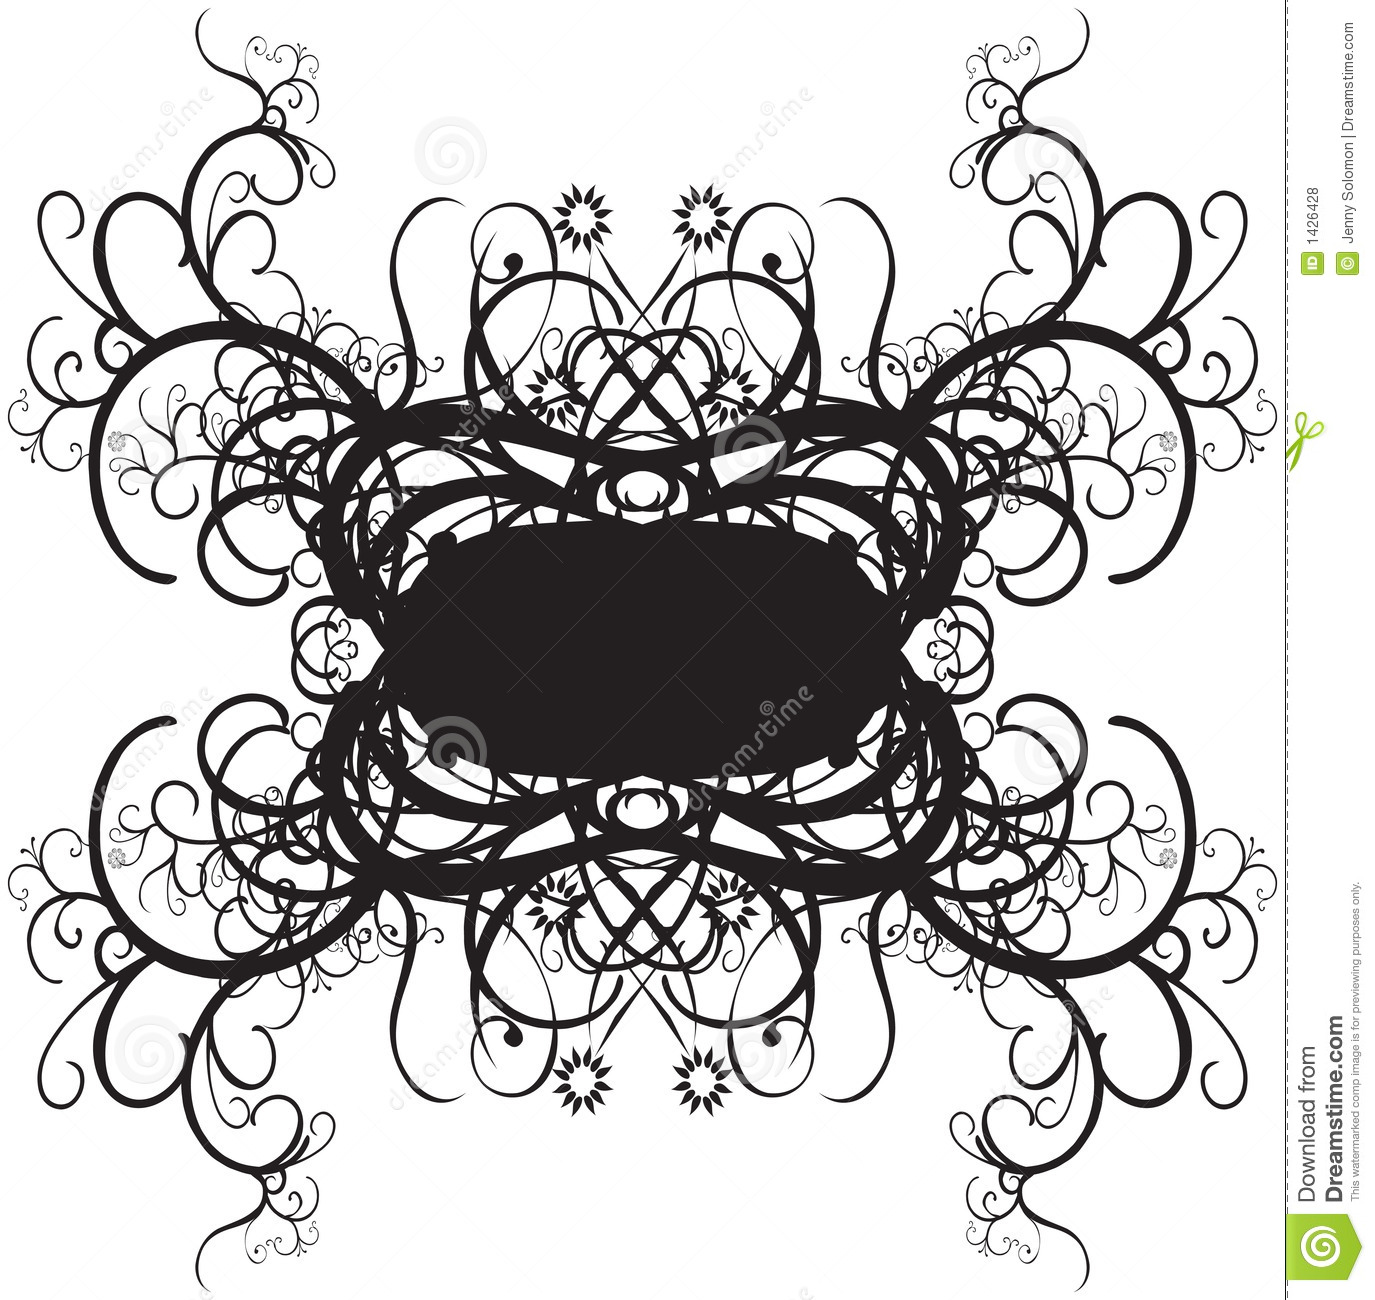 Decorative Border Designs Stock Vector Illustration Of Original